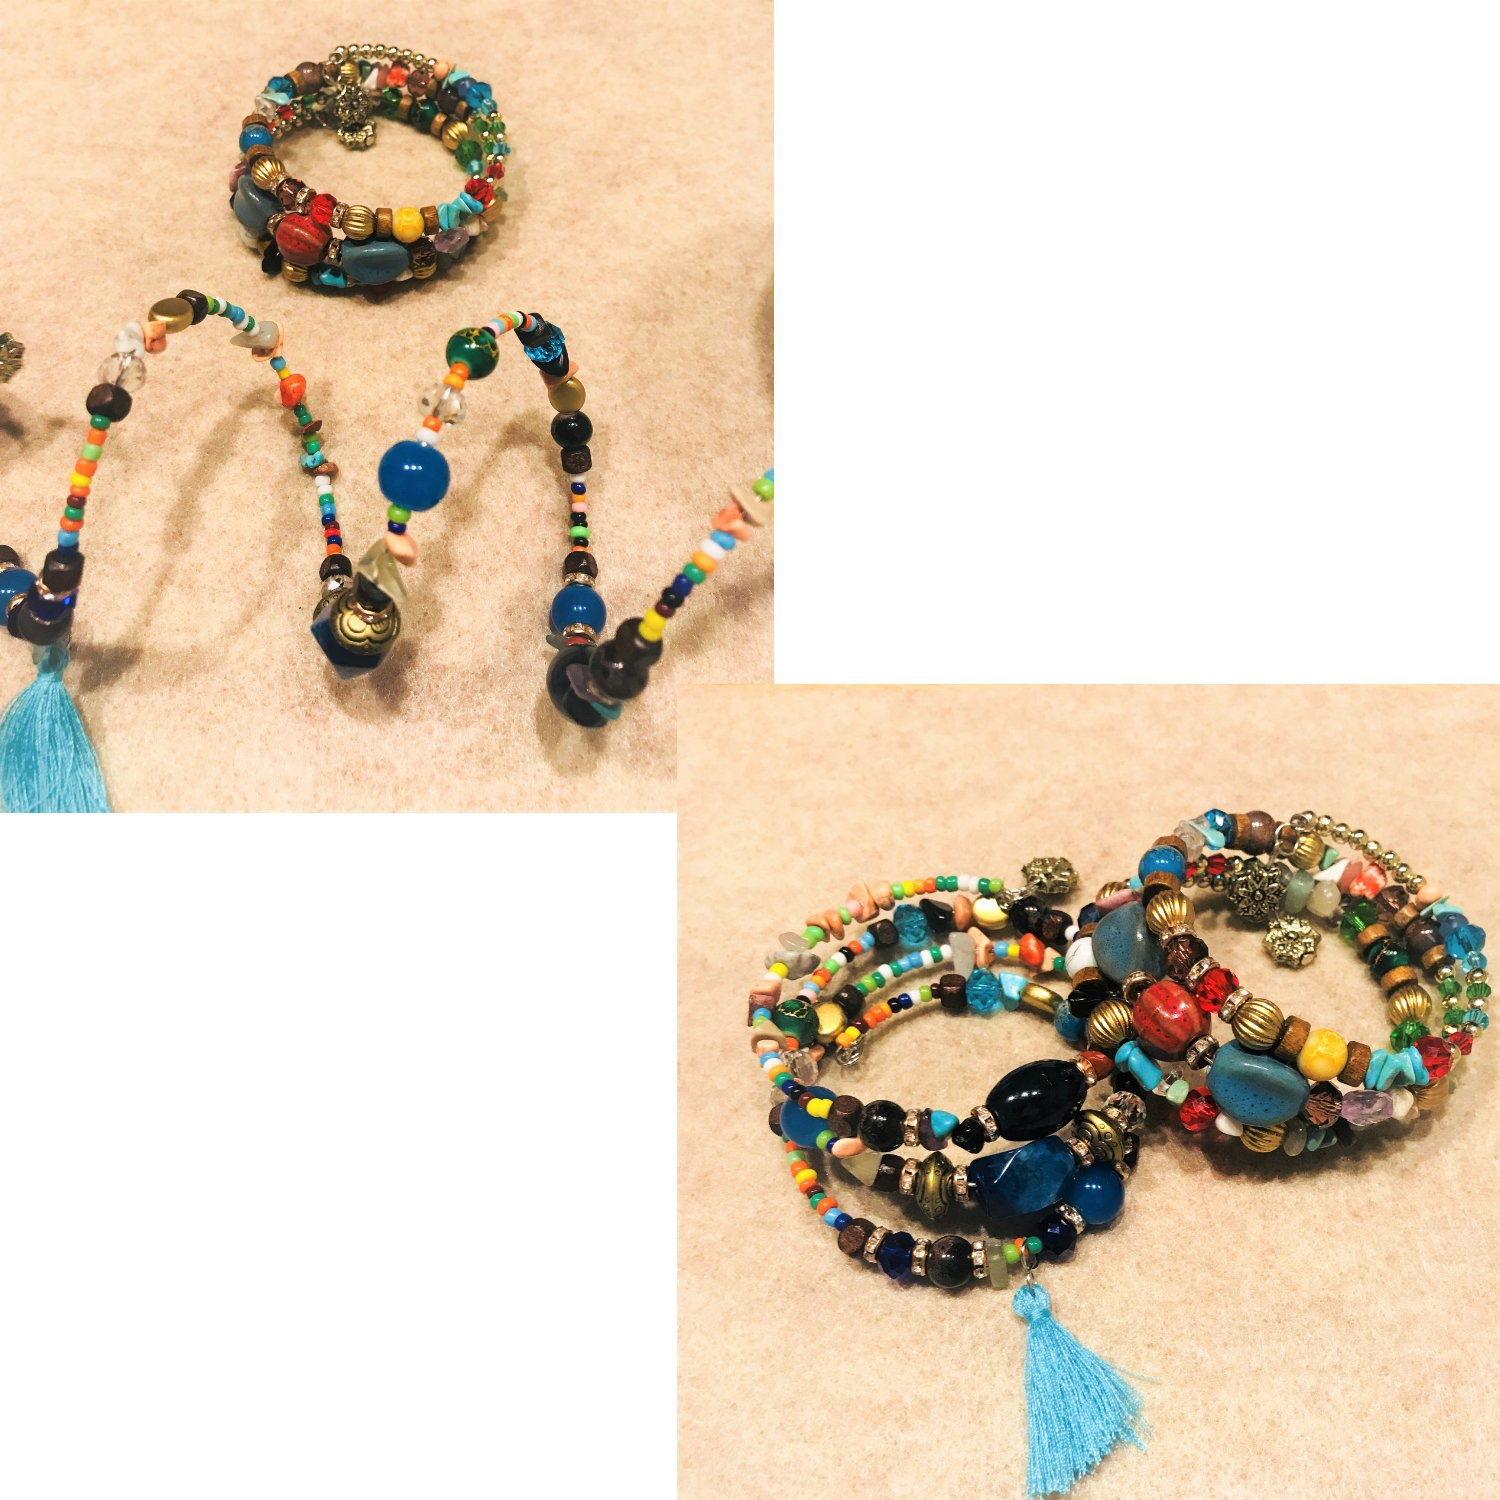 ISAACSONG.DESIGN Bohemian Multilayer Healing Stone Crystal Beads Charm Tribal Wrap Bangle Bracelet for Women (2 Pcs Colorful Beaded) by ISAACSONG.DESIGN (Image #5)